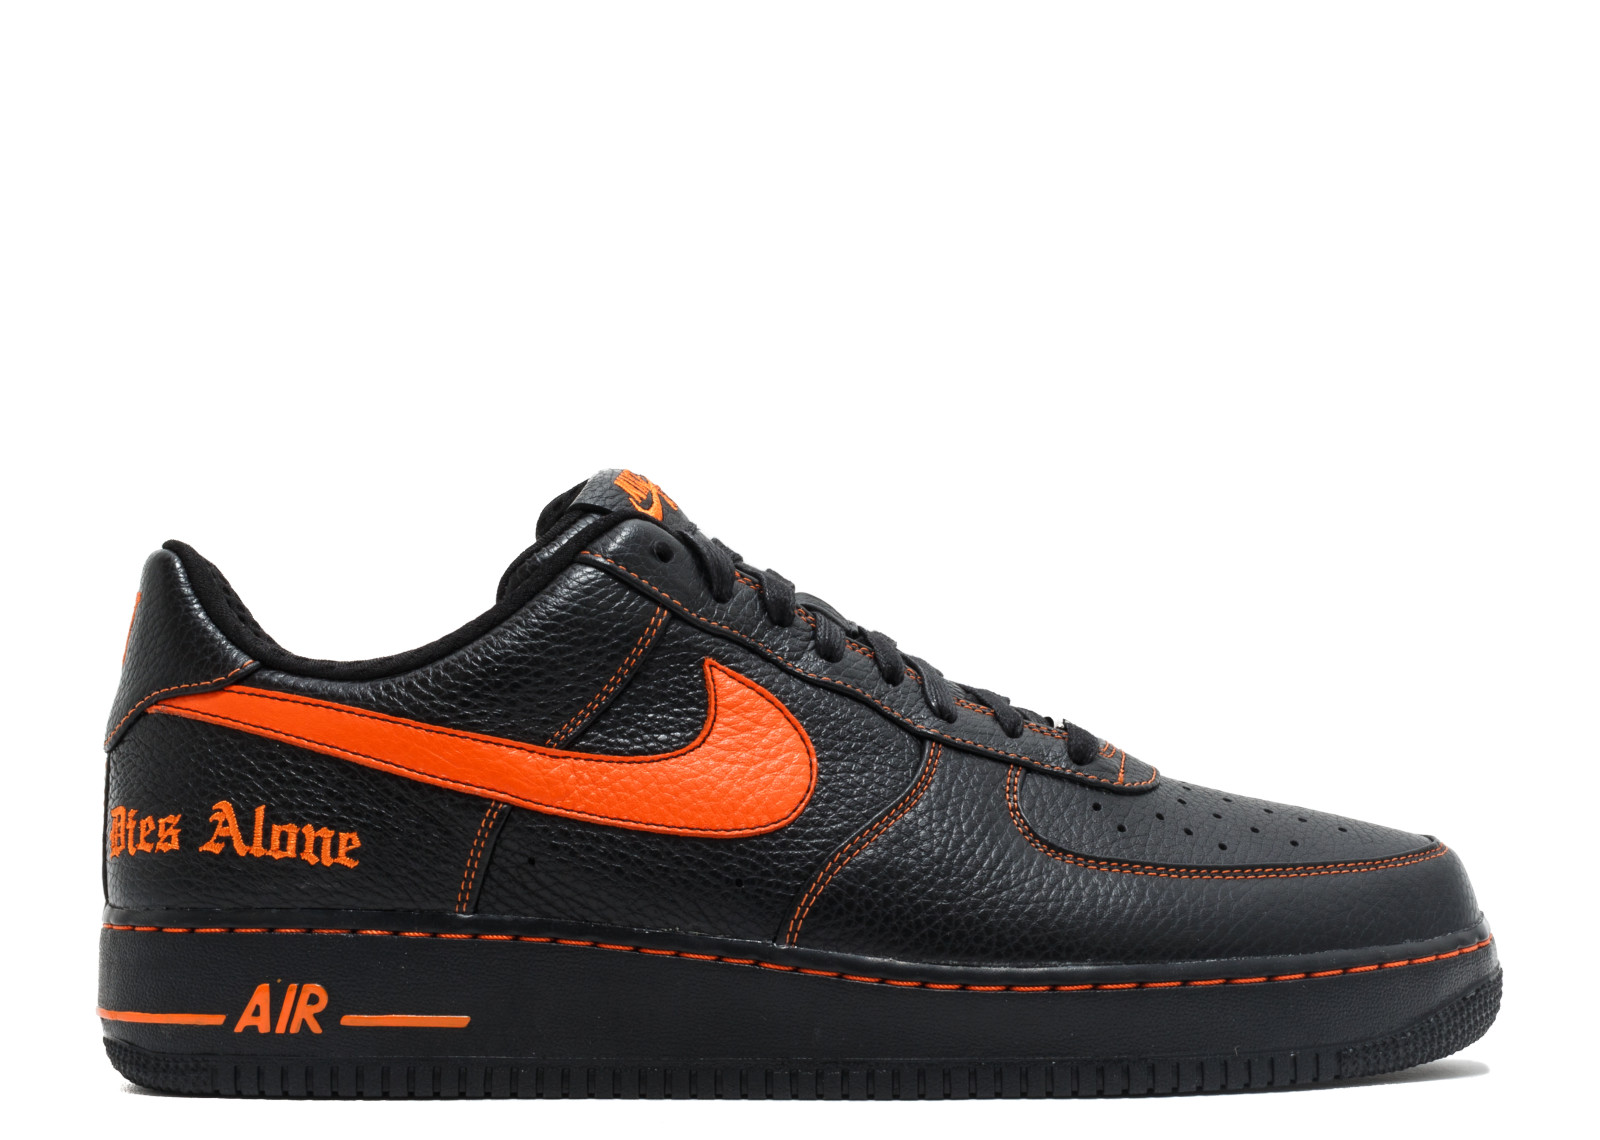 quality design 904ad dc8b3 Air Force 1 Low VLONE (2017) - 0